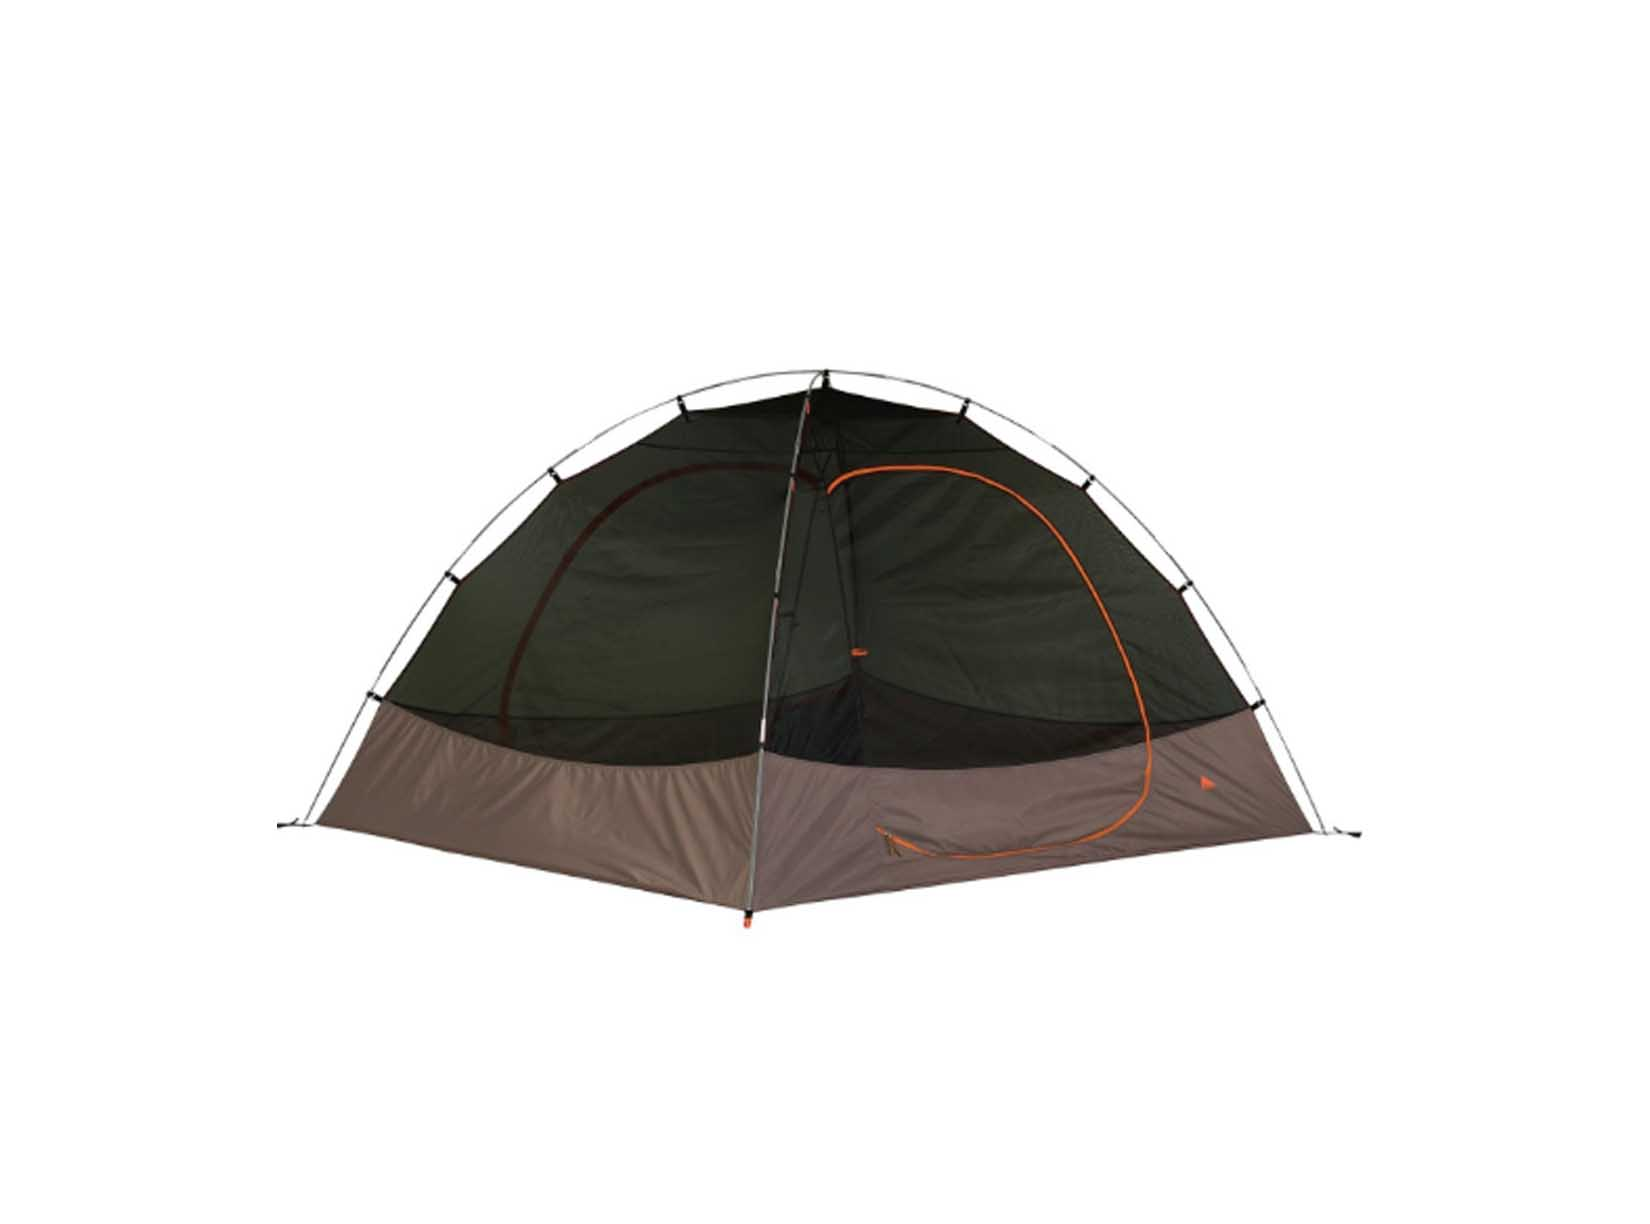 4-Person 3 Season Kelty Acadia 4 Tent for $99.99 at Sierra Trading Post  sc 1 st  The Best Deals Club & 4-Person 3 Season Kelty Acadia 4 Tent for $99.99 at Sierra Trading ...